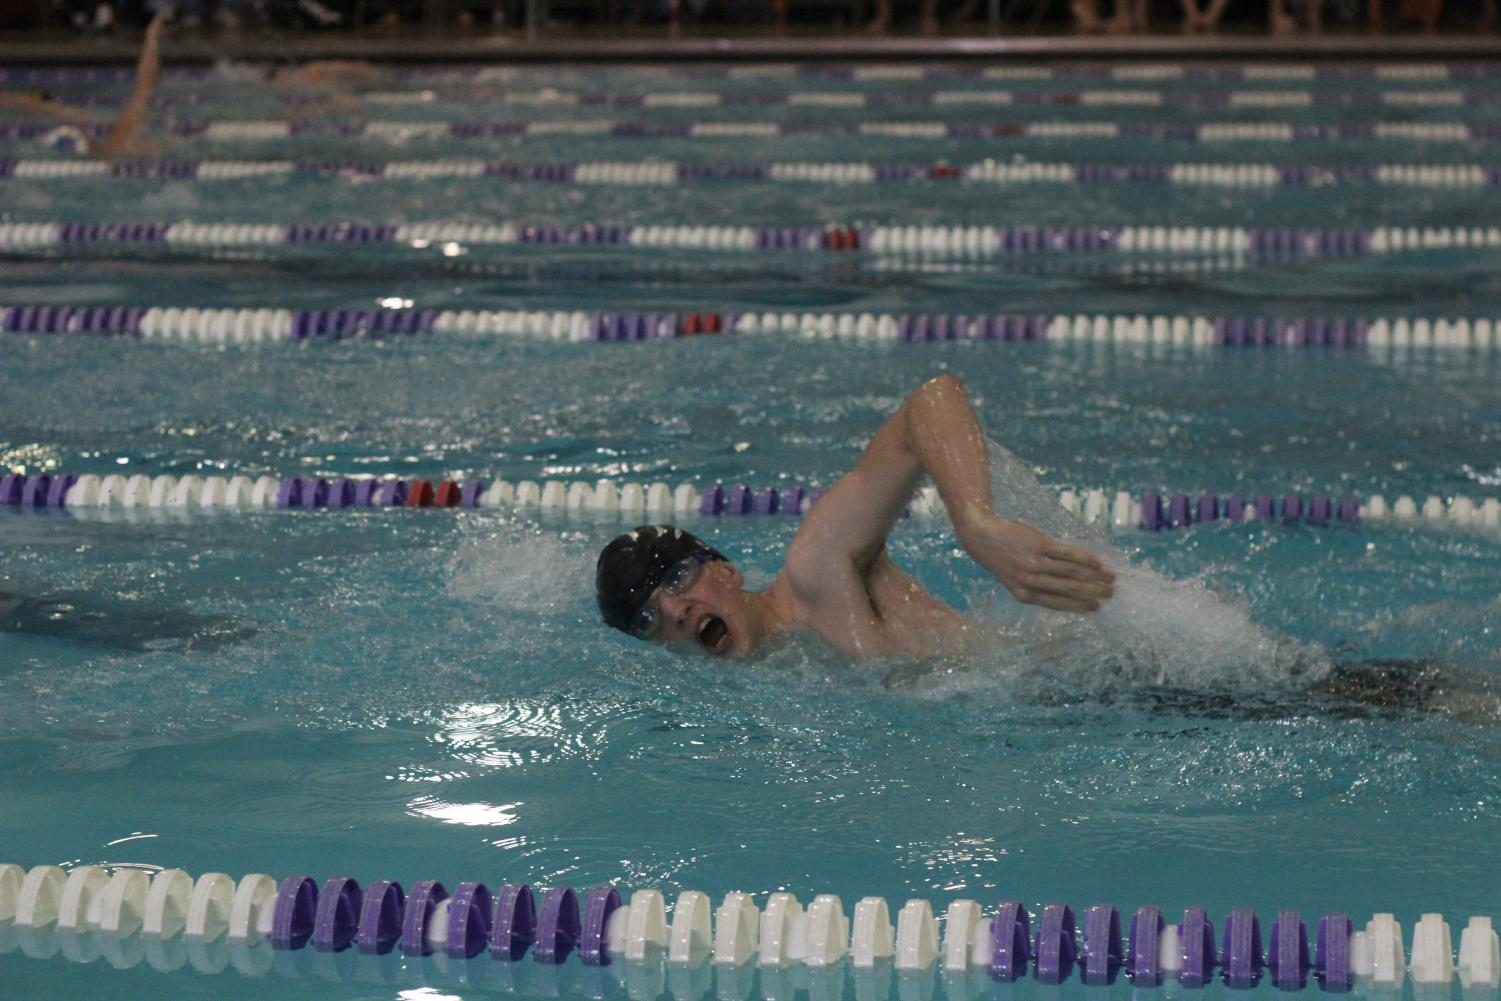 Blade Goering swimming his 200 yd freestyle event